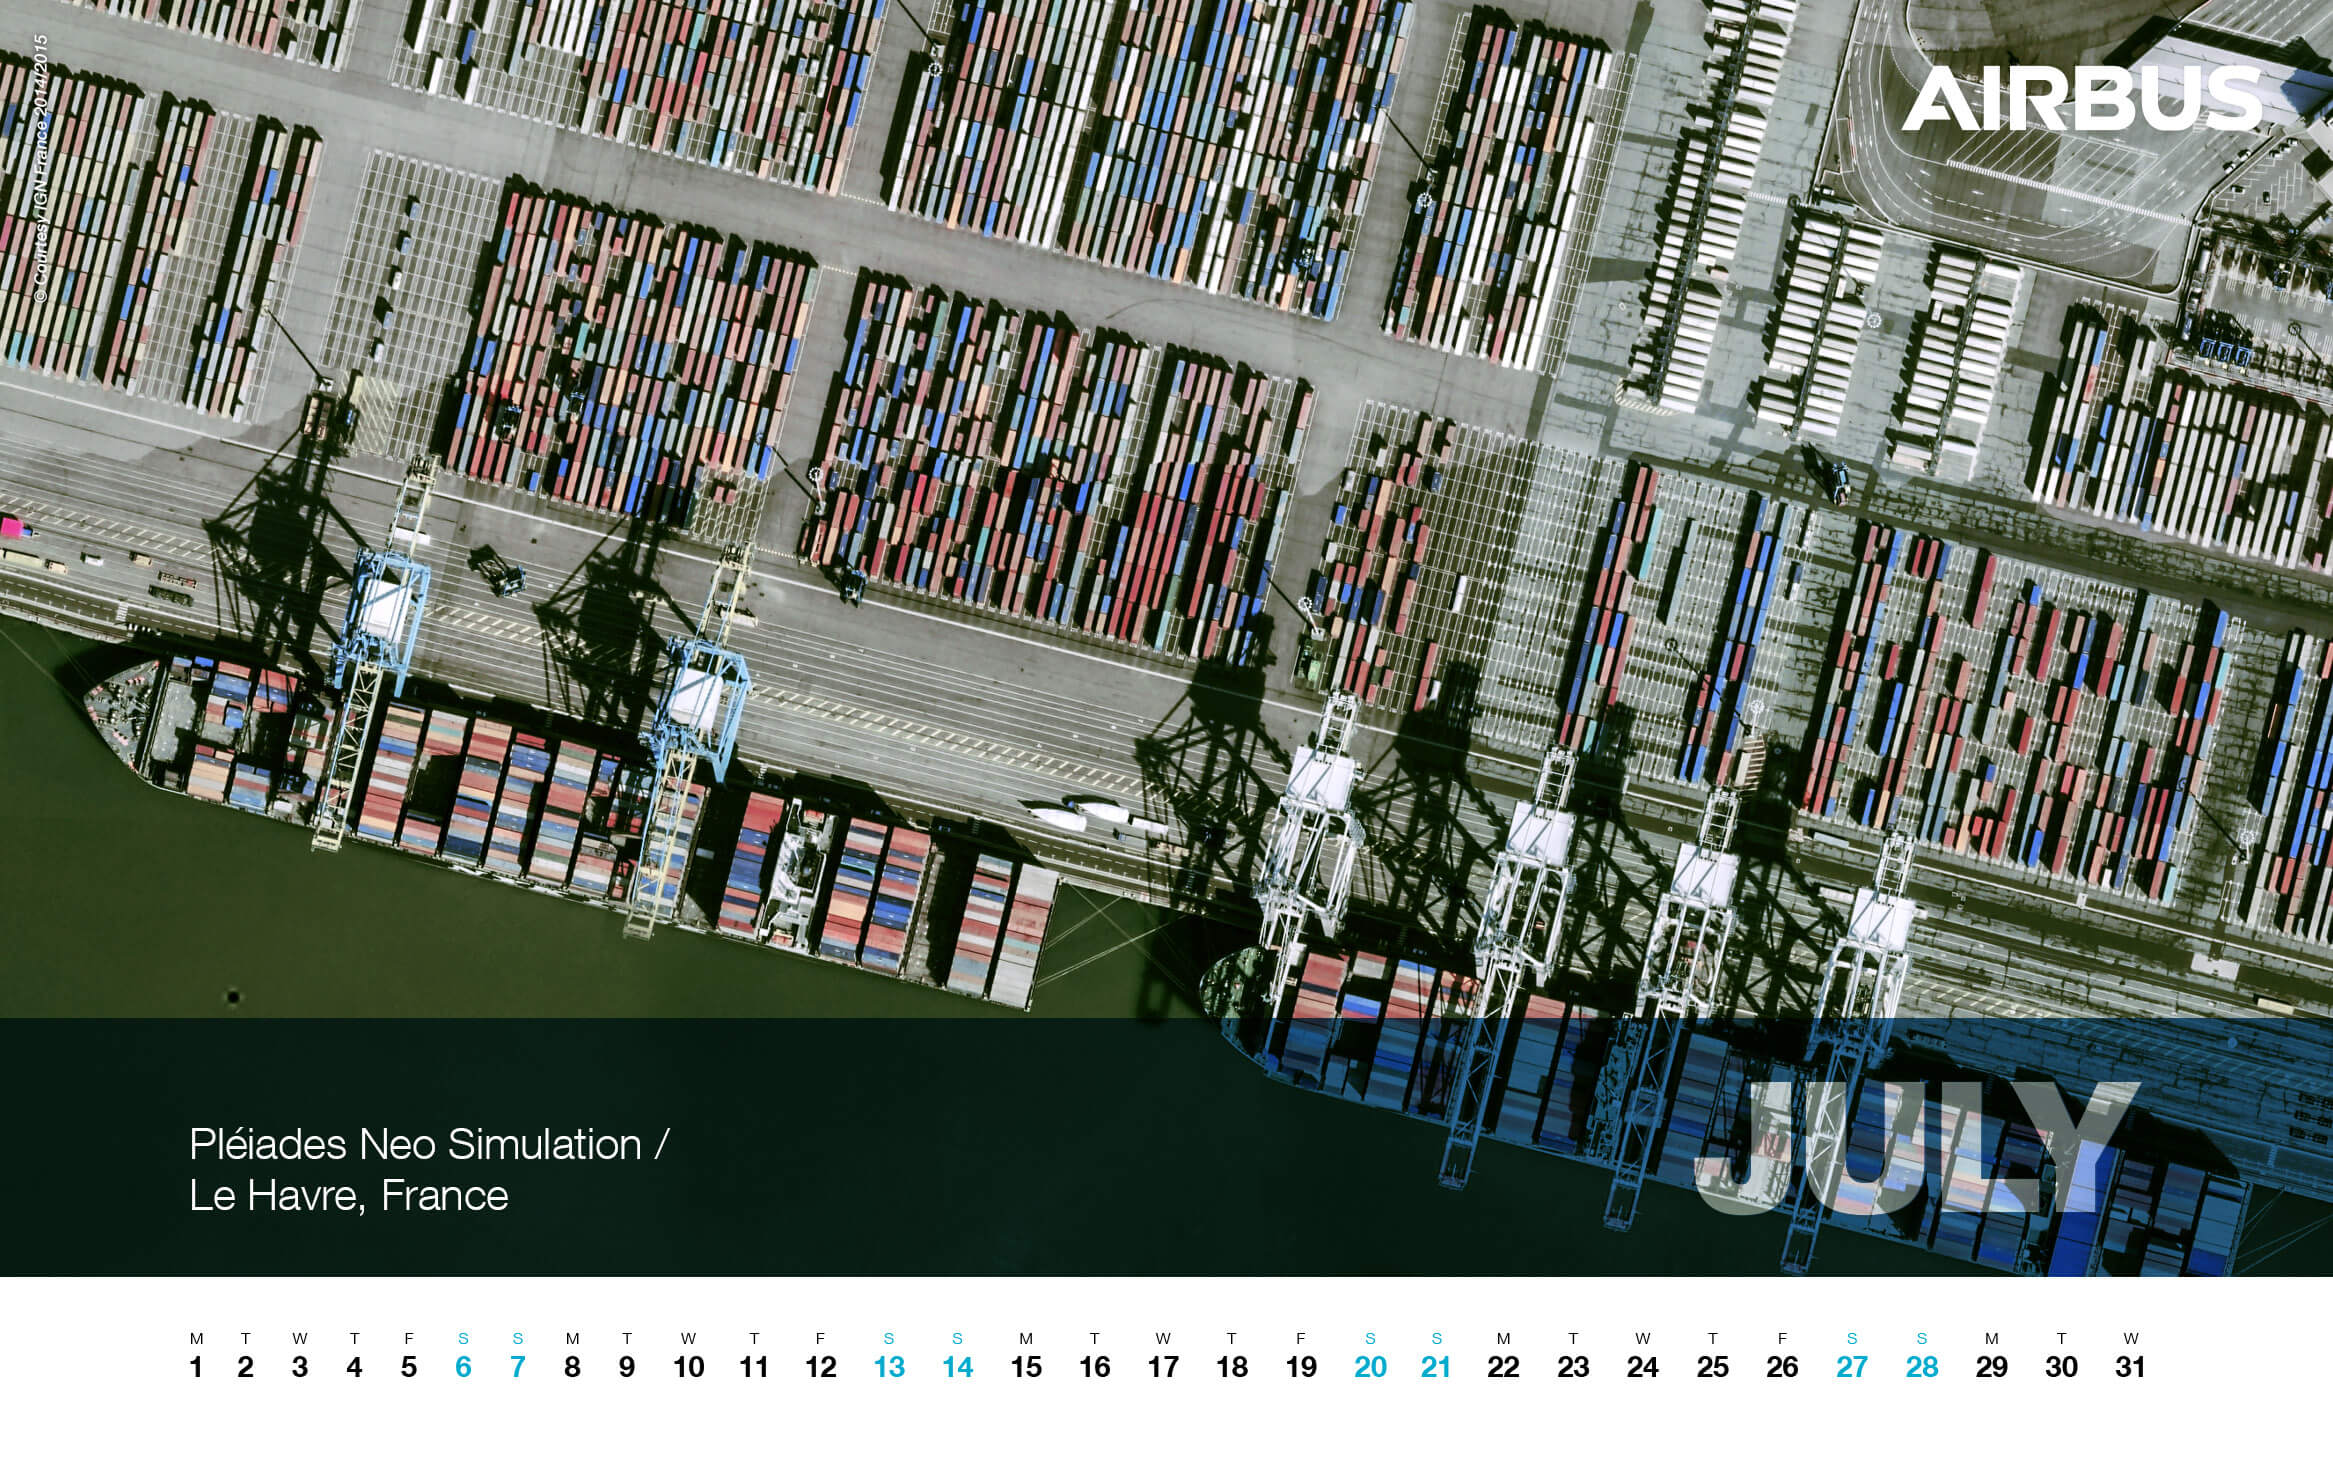 Calendar 2019 - July - Le Havre, France - Pléiades Neo Simulation - 1680x1050